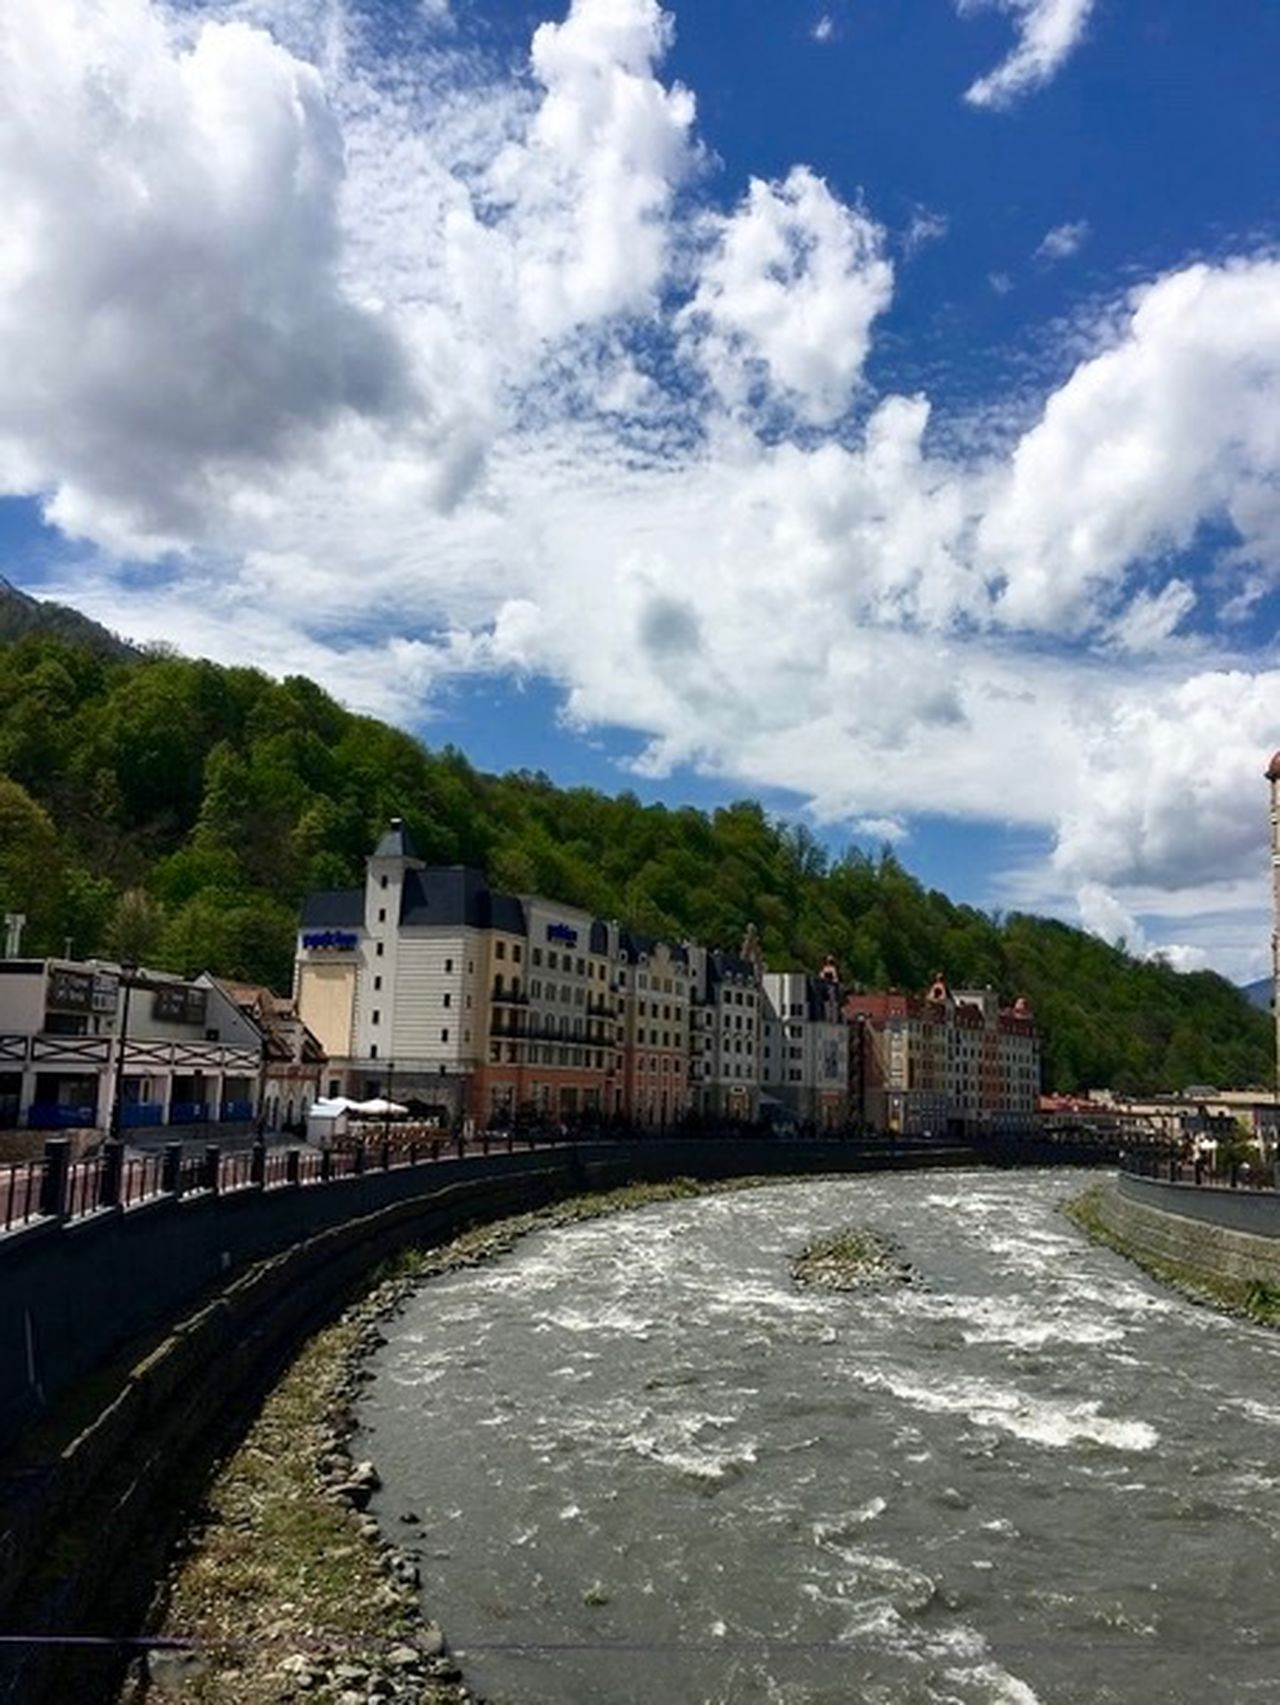 Architecture Building Building Exterior Built Structure Canal City Cityscape Cloudy Krasnaya Polyana Landscape Mountain Nature No People Outdoors Overcast Residential Building Residential Structure River Rosa Khutor Russia Sochi Town Weather Красная поляна My Sky